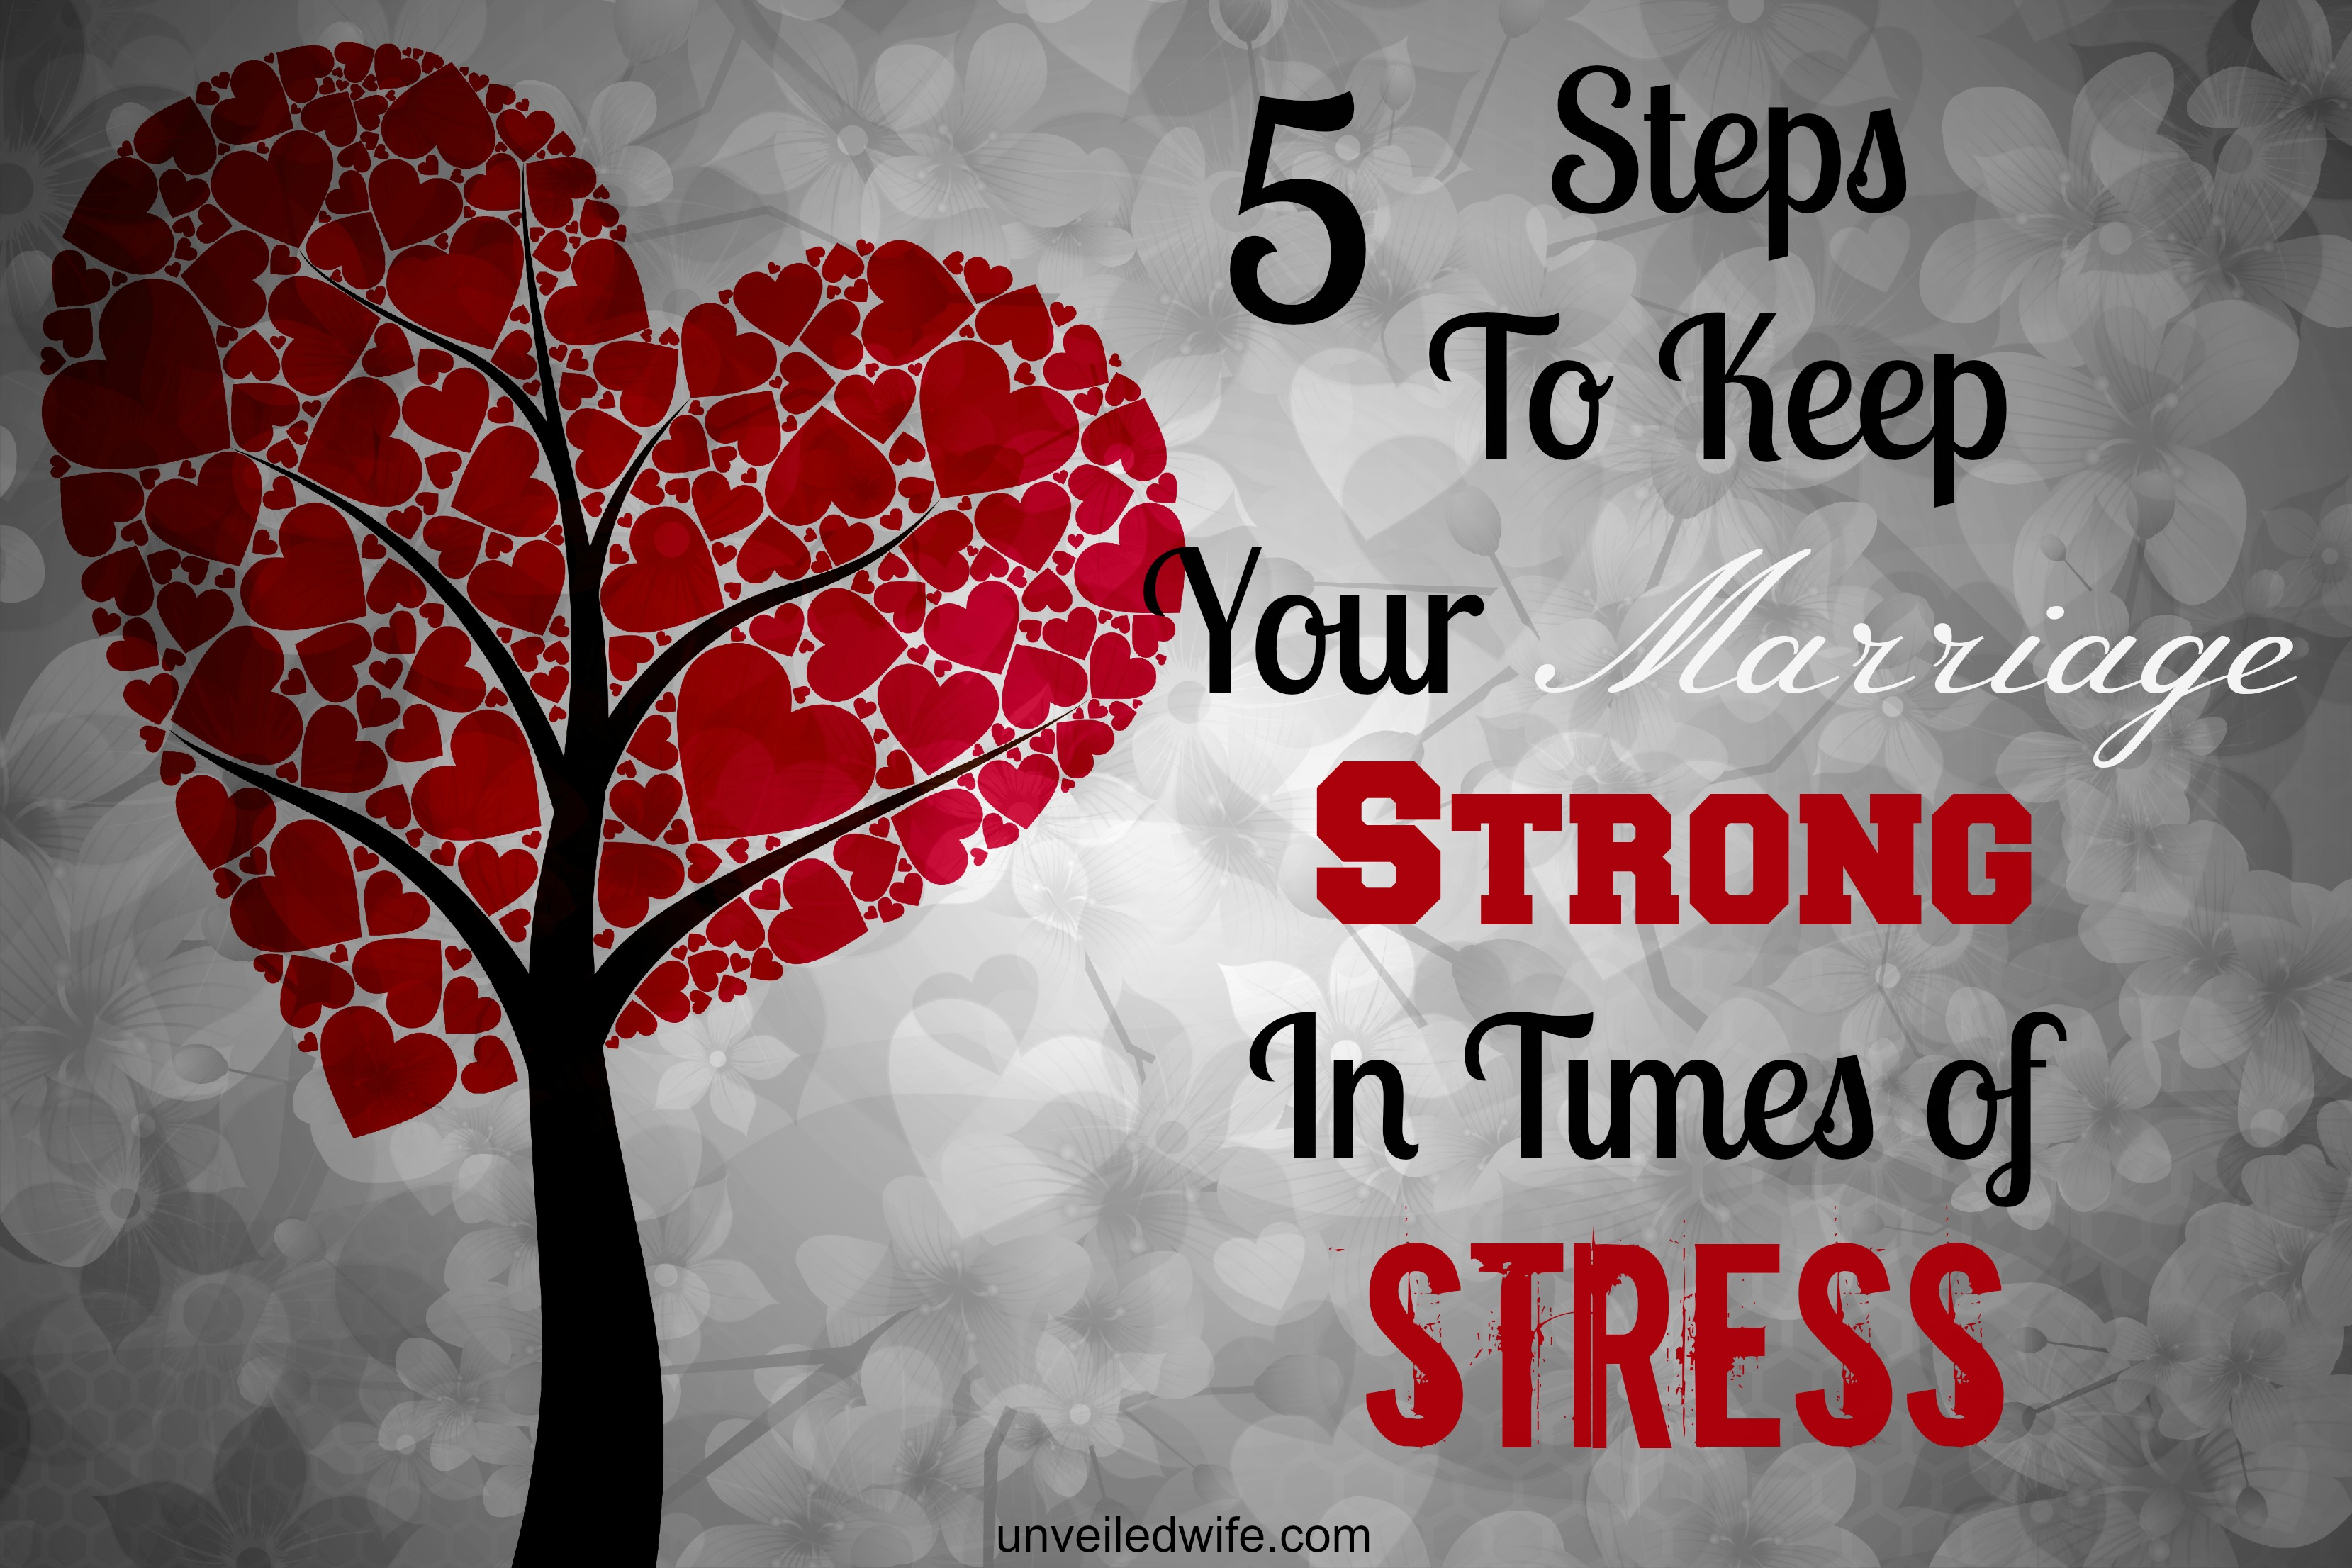 5 Ways to Keep Your Marriage Strong in Times of Stress